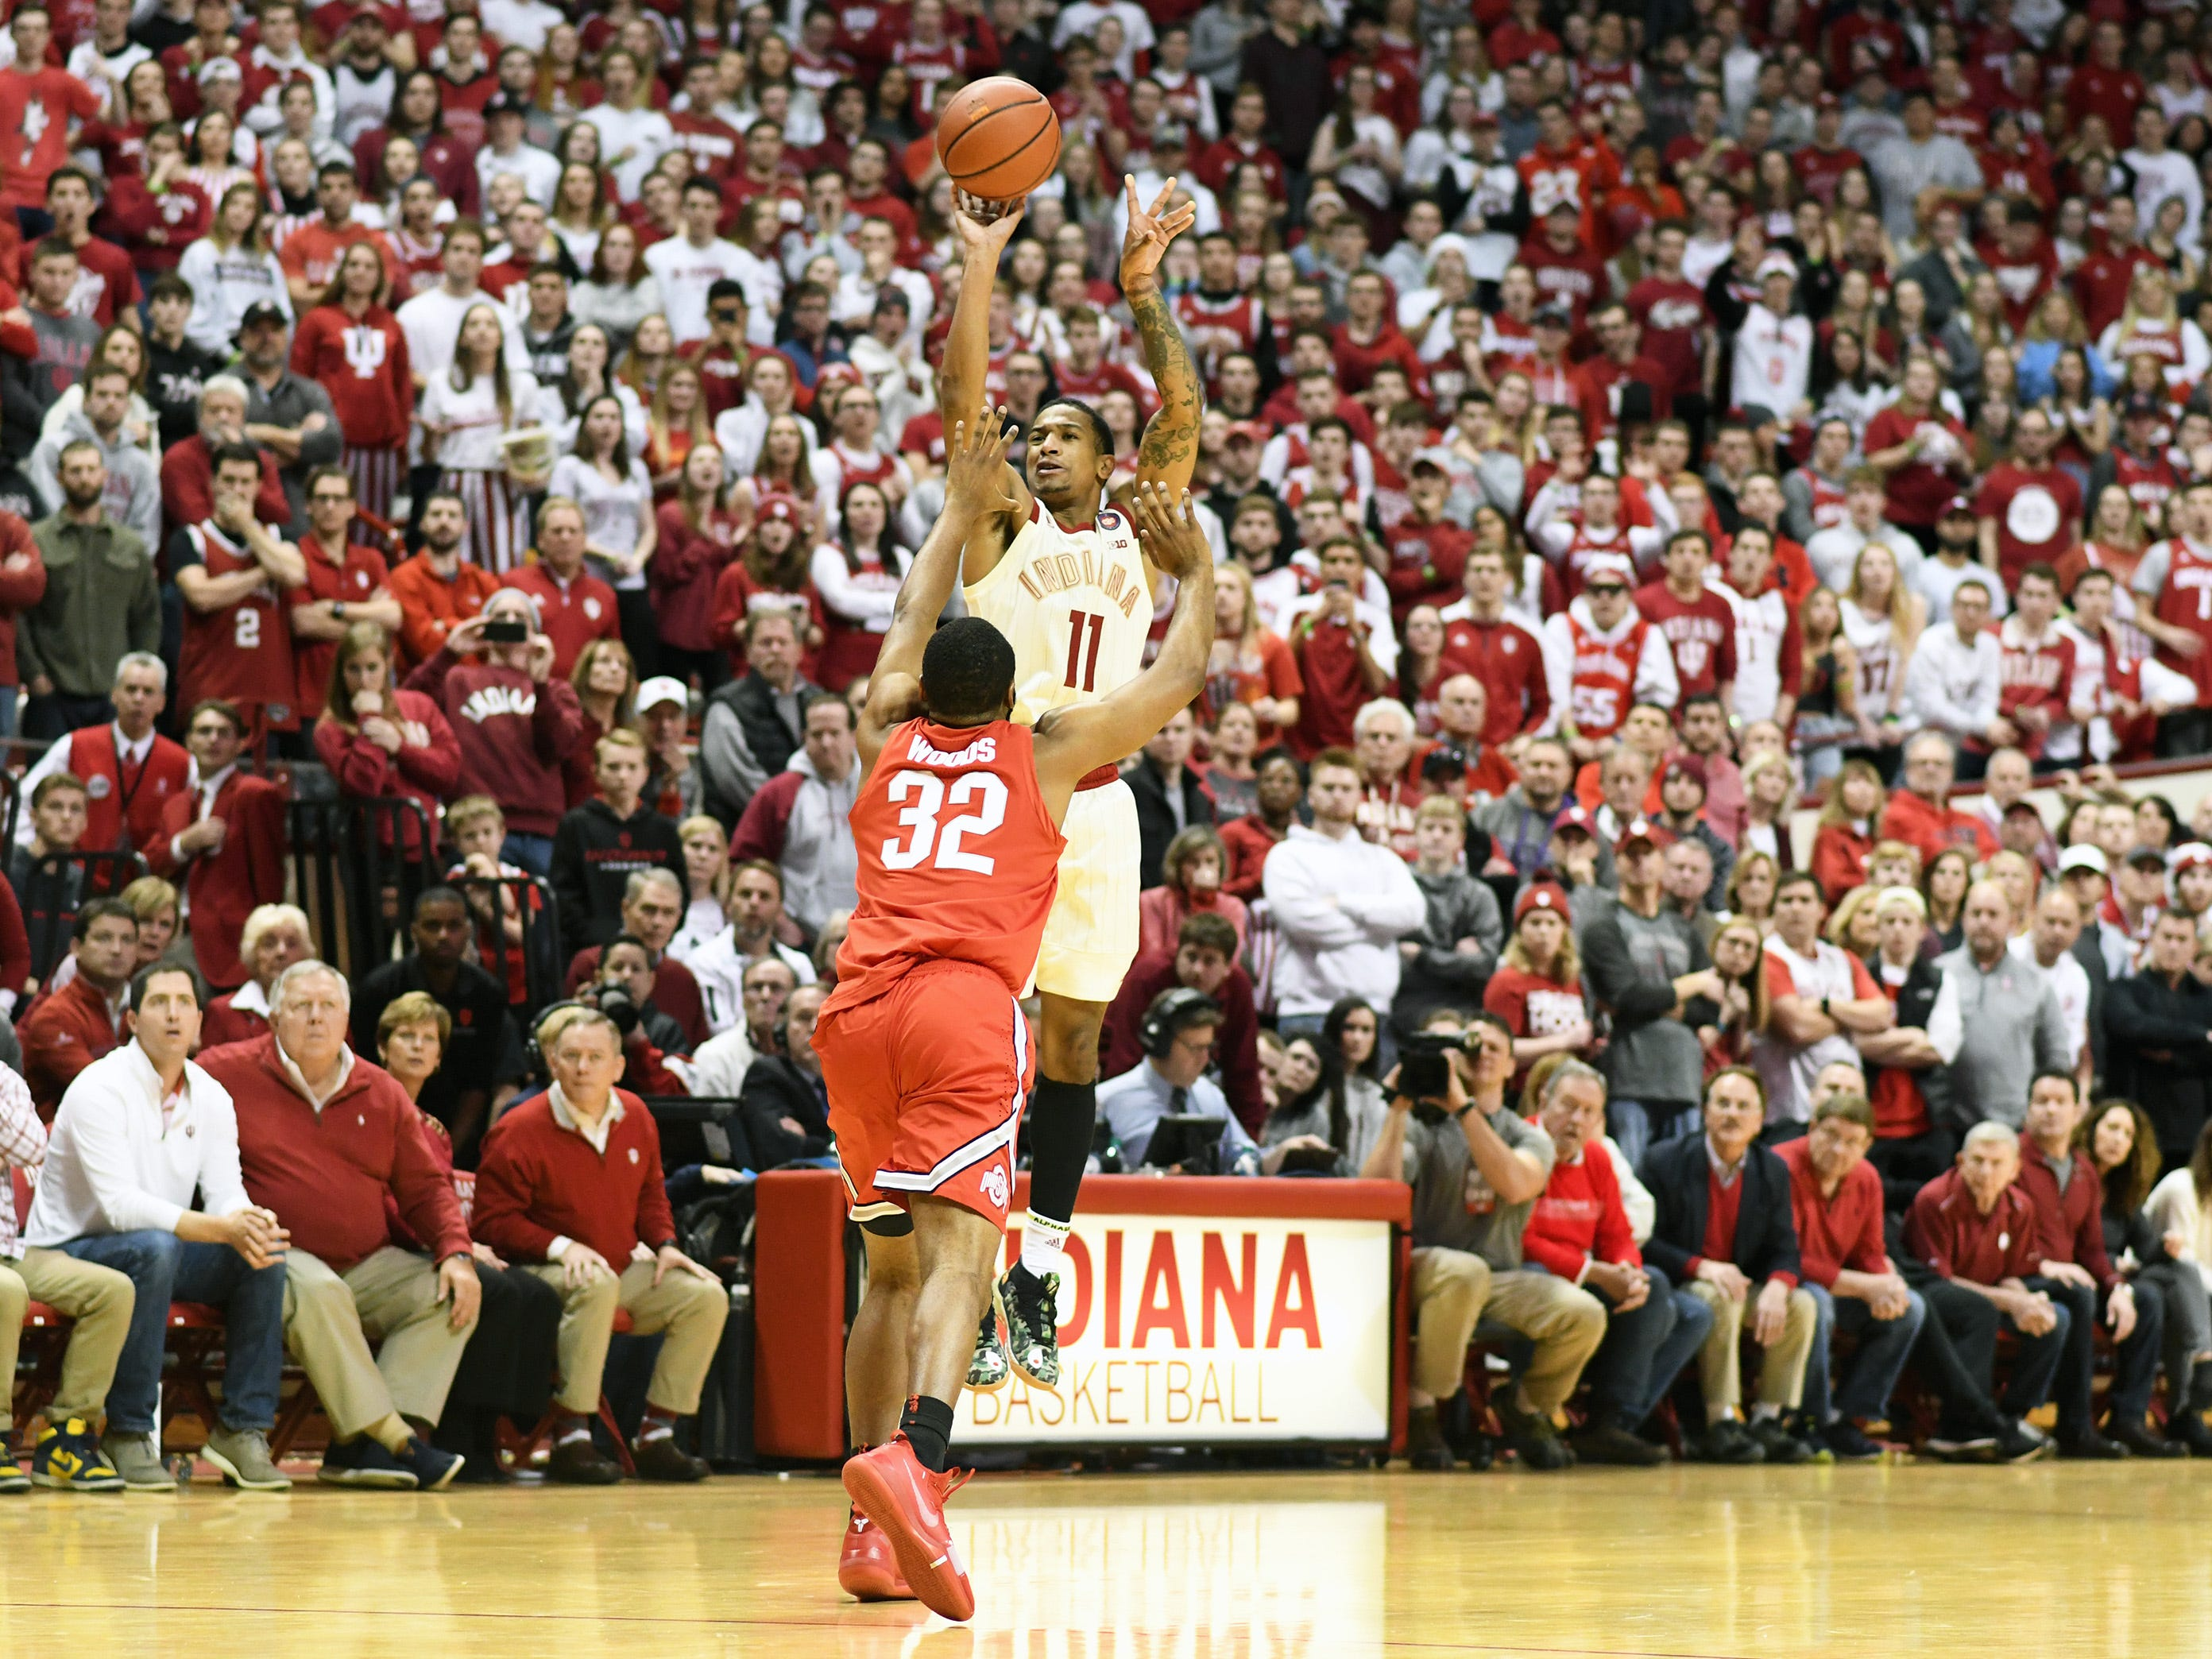 Indiana Hoosiers guard Devonte Green (11) makes a three-pointer during the game against Ohio State at Simon Skjodt Assembly Hall in Bloomington Ind., on Sunday, Feb. 10, 2019.